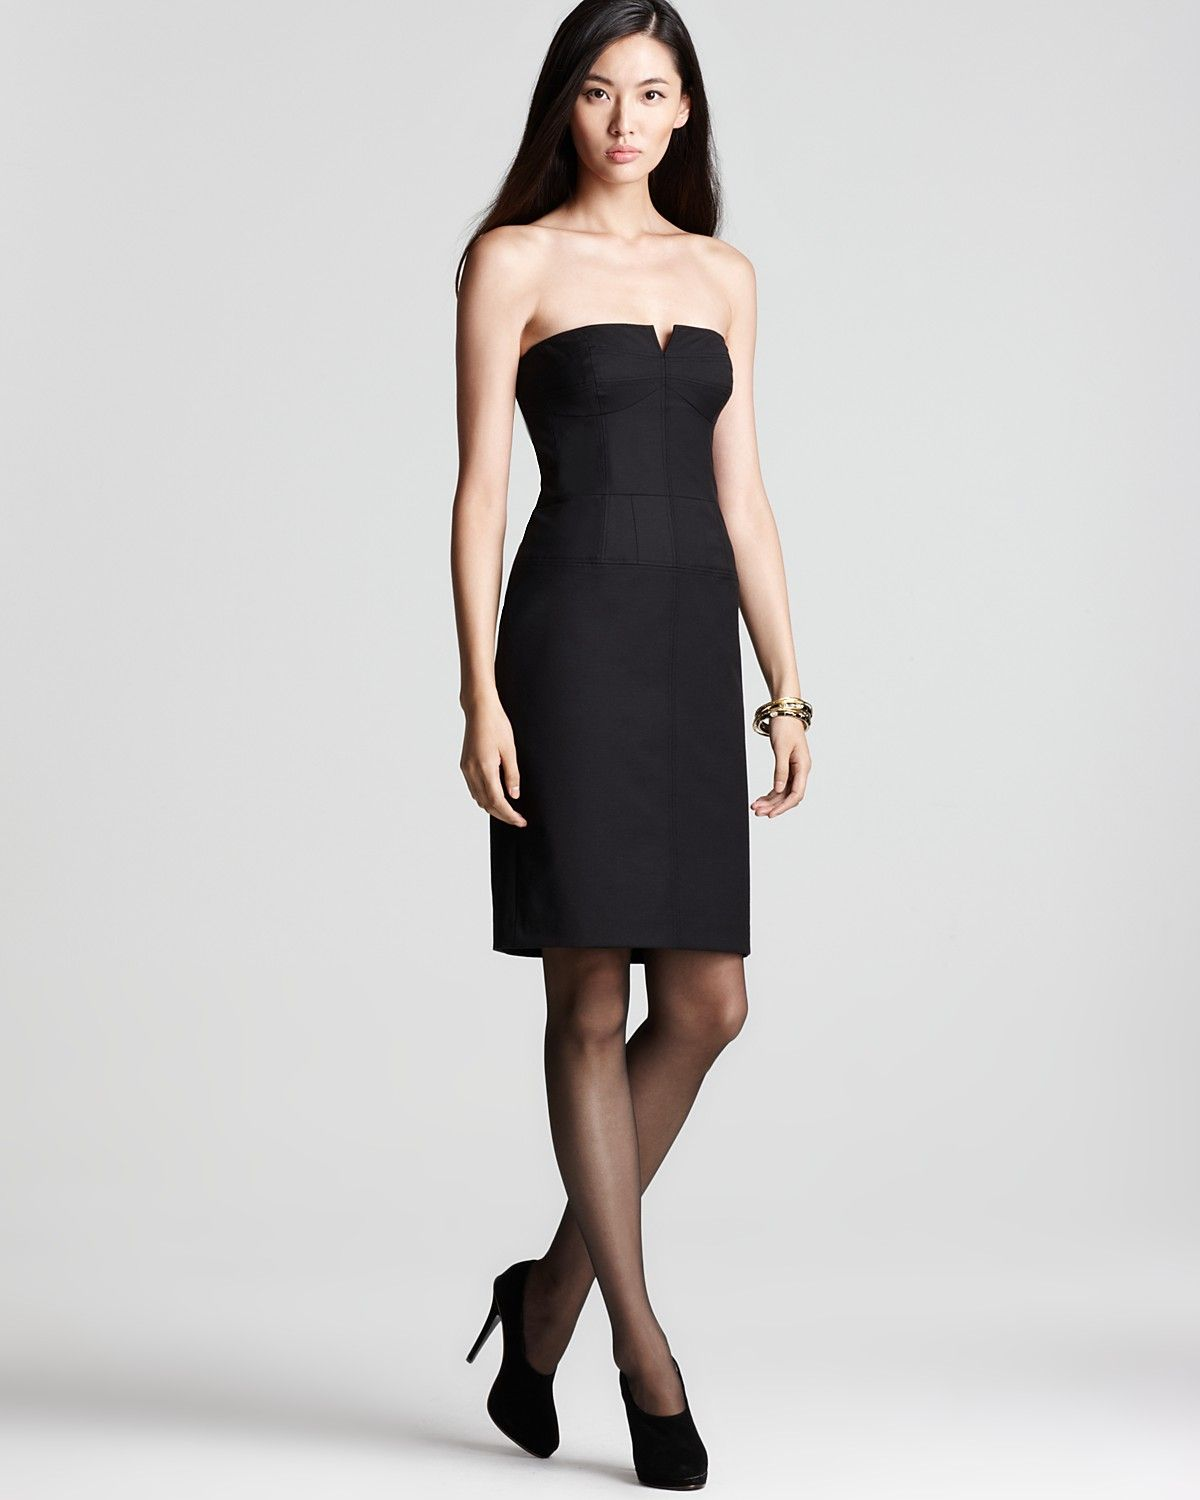 French Connection Strapless Dress Days Of Winter Women Dresses Bloomingdale S Dresses Strapless Dress Womens Dresses [ 1500 x 1200 Pixel ]